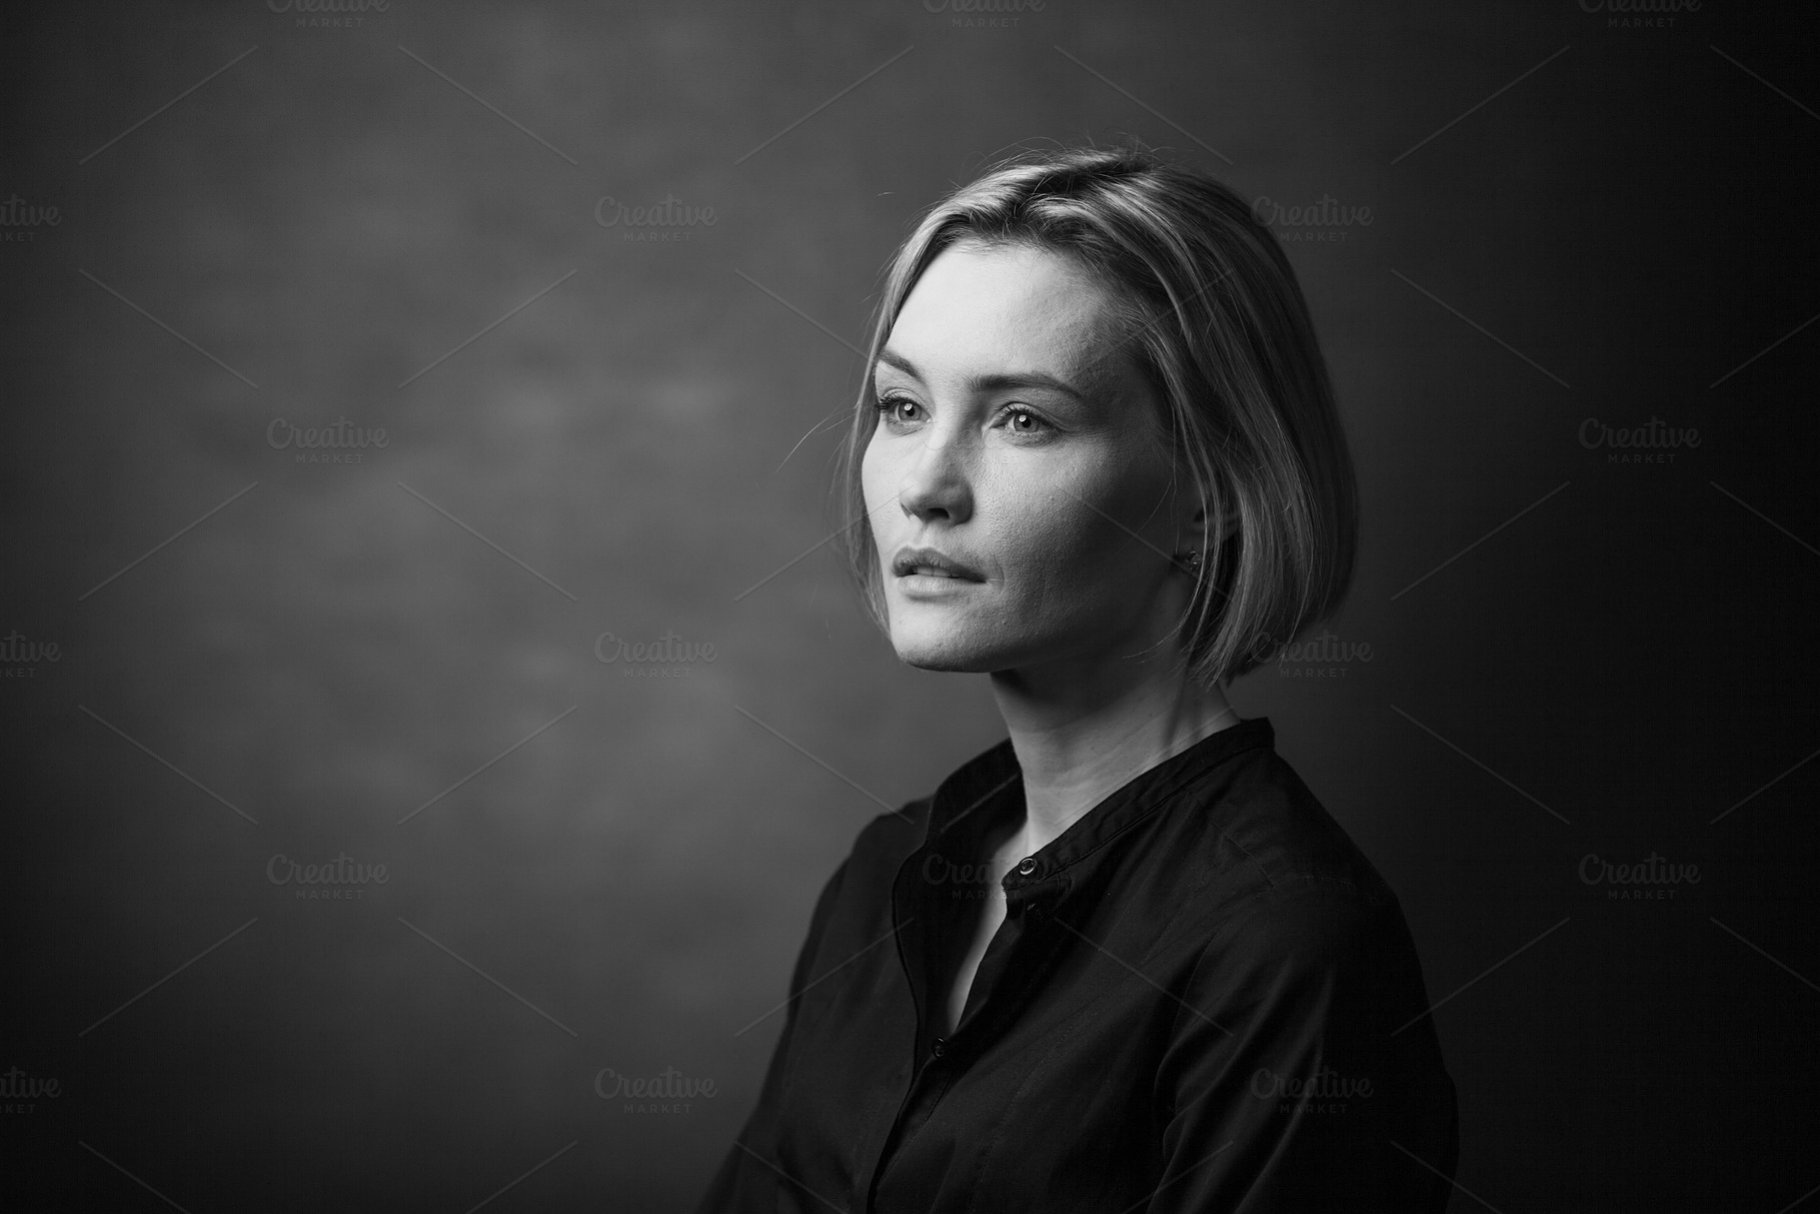 Save dramatic black and white portrait of